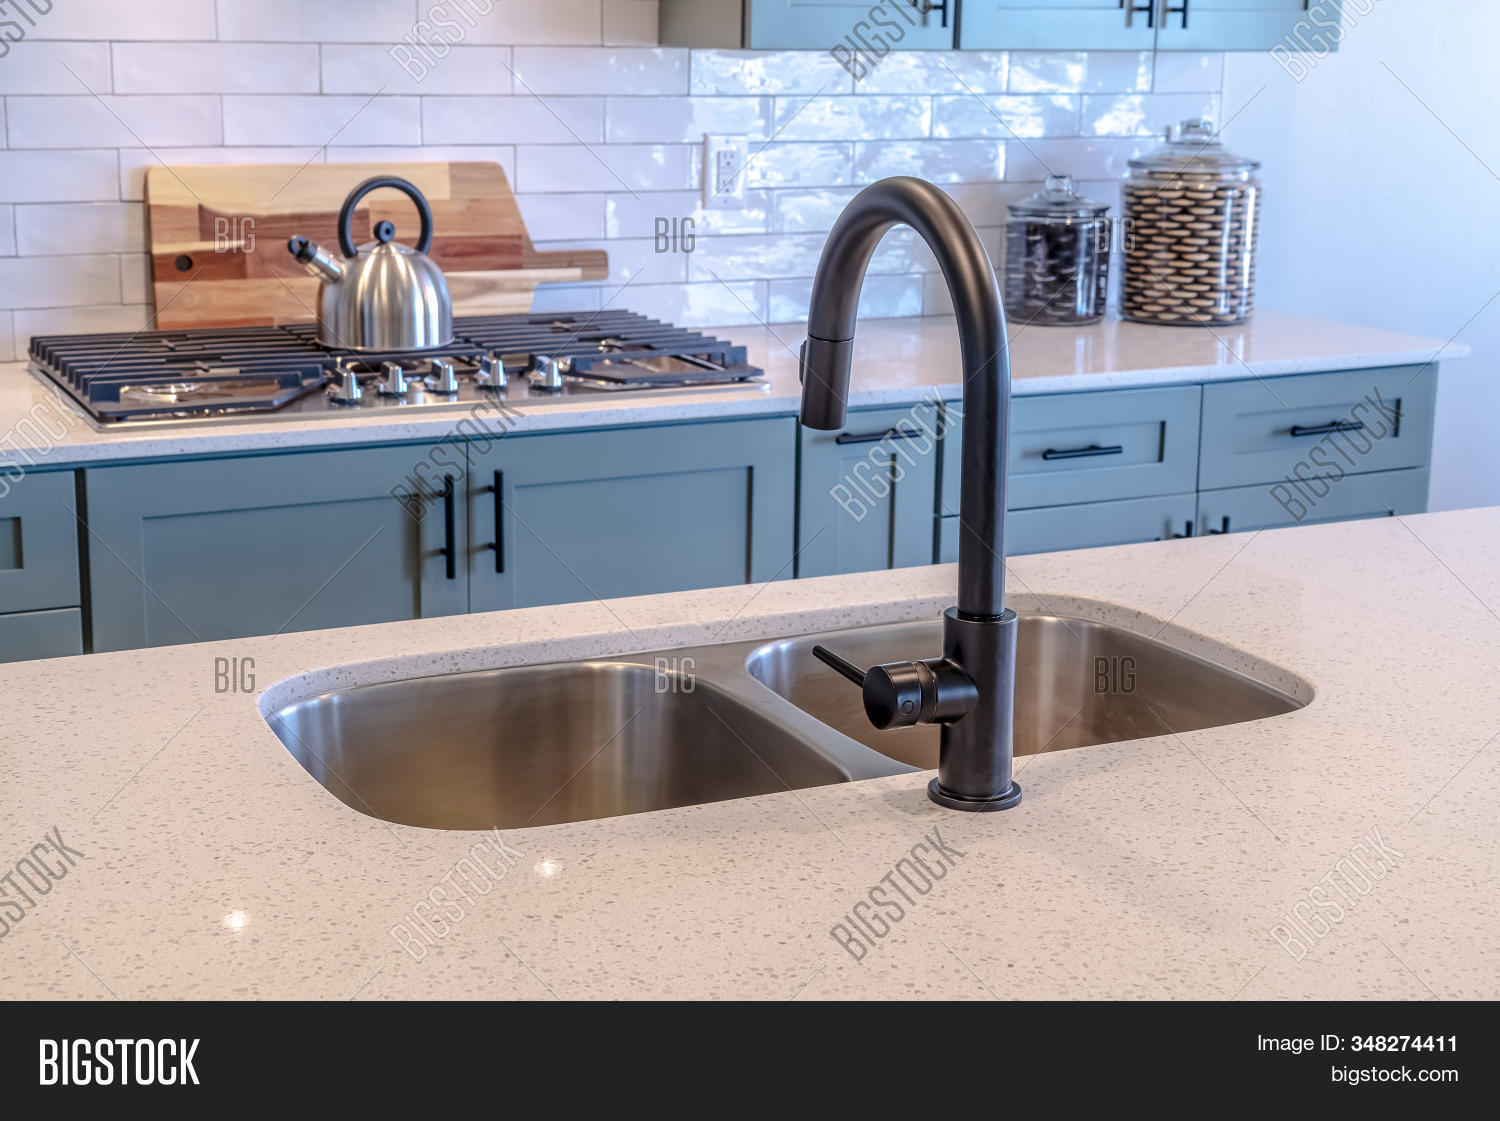 - Kitchen Island Double Image & Photo (Free Trial) Bigstock